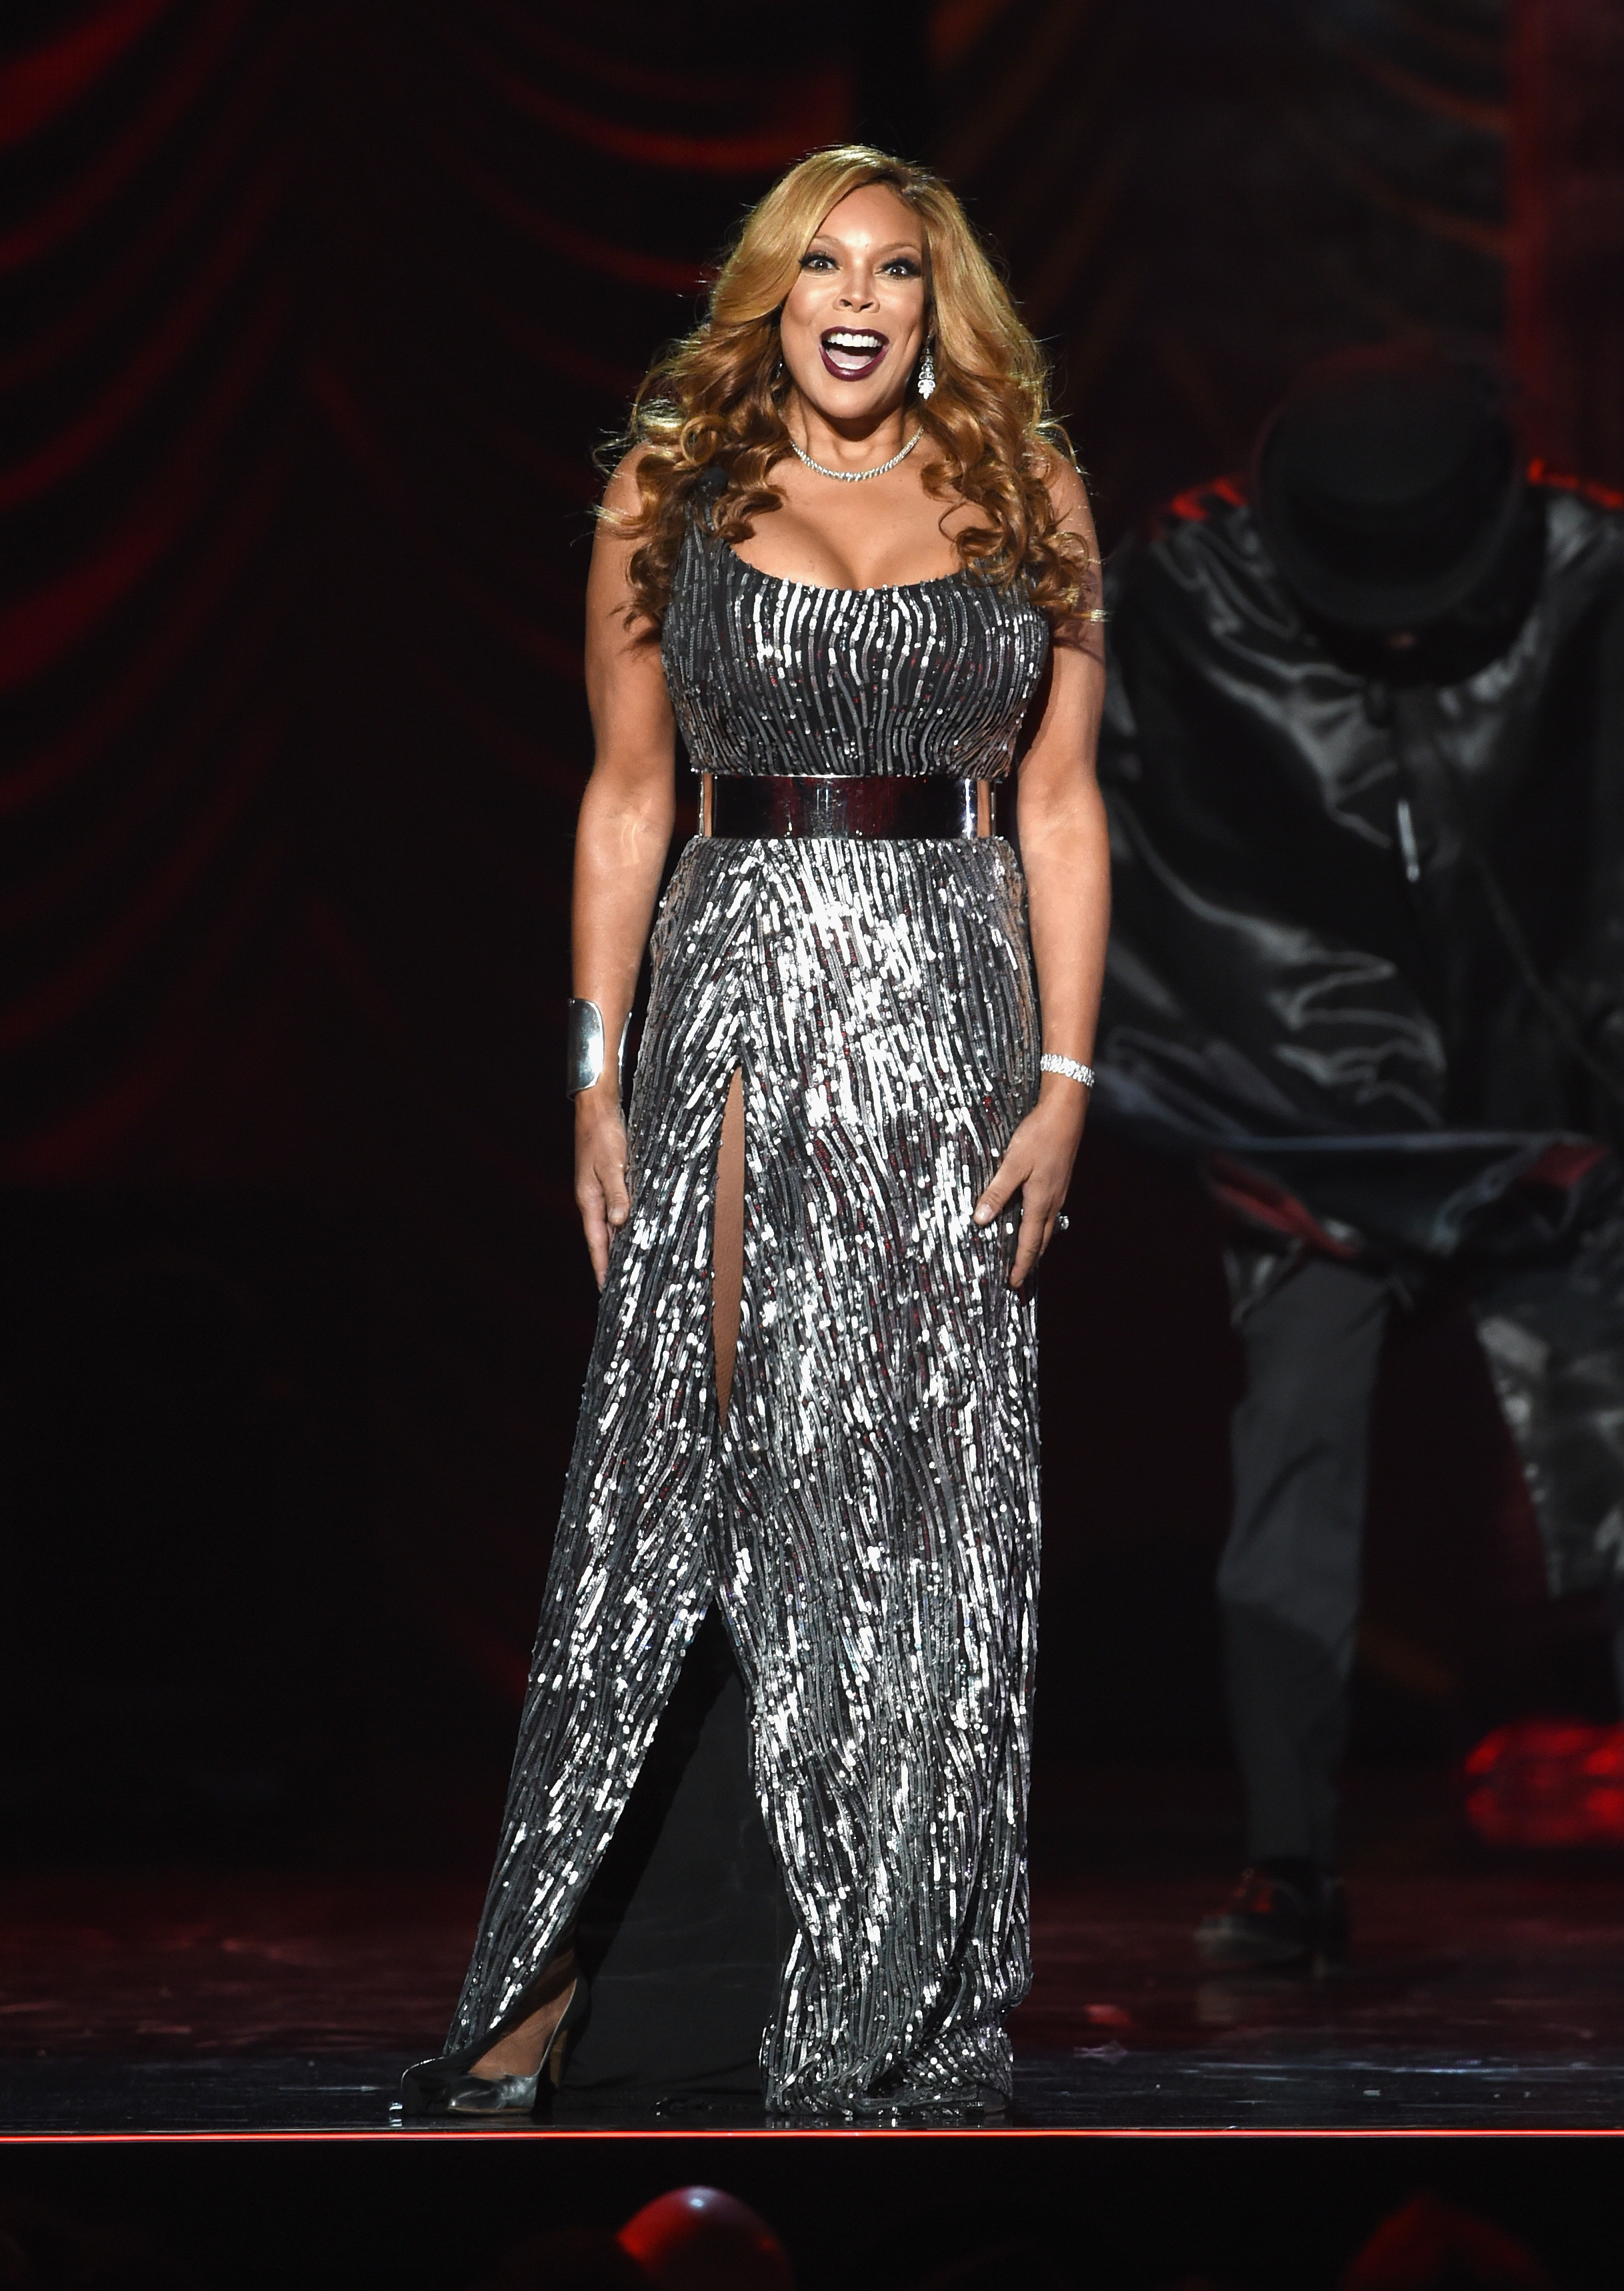 LAS VEGAS, NV - NOVEMBER 07:  Host Wendy Williams speaks onstage during the 2014 Soul Train Music Awards at the Orleans Arena on November 7, 2014 in Las Vegas, Nevada.  (Photo by Ethan Miller/BET/Getty Images for BET)